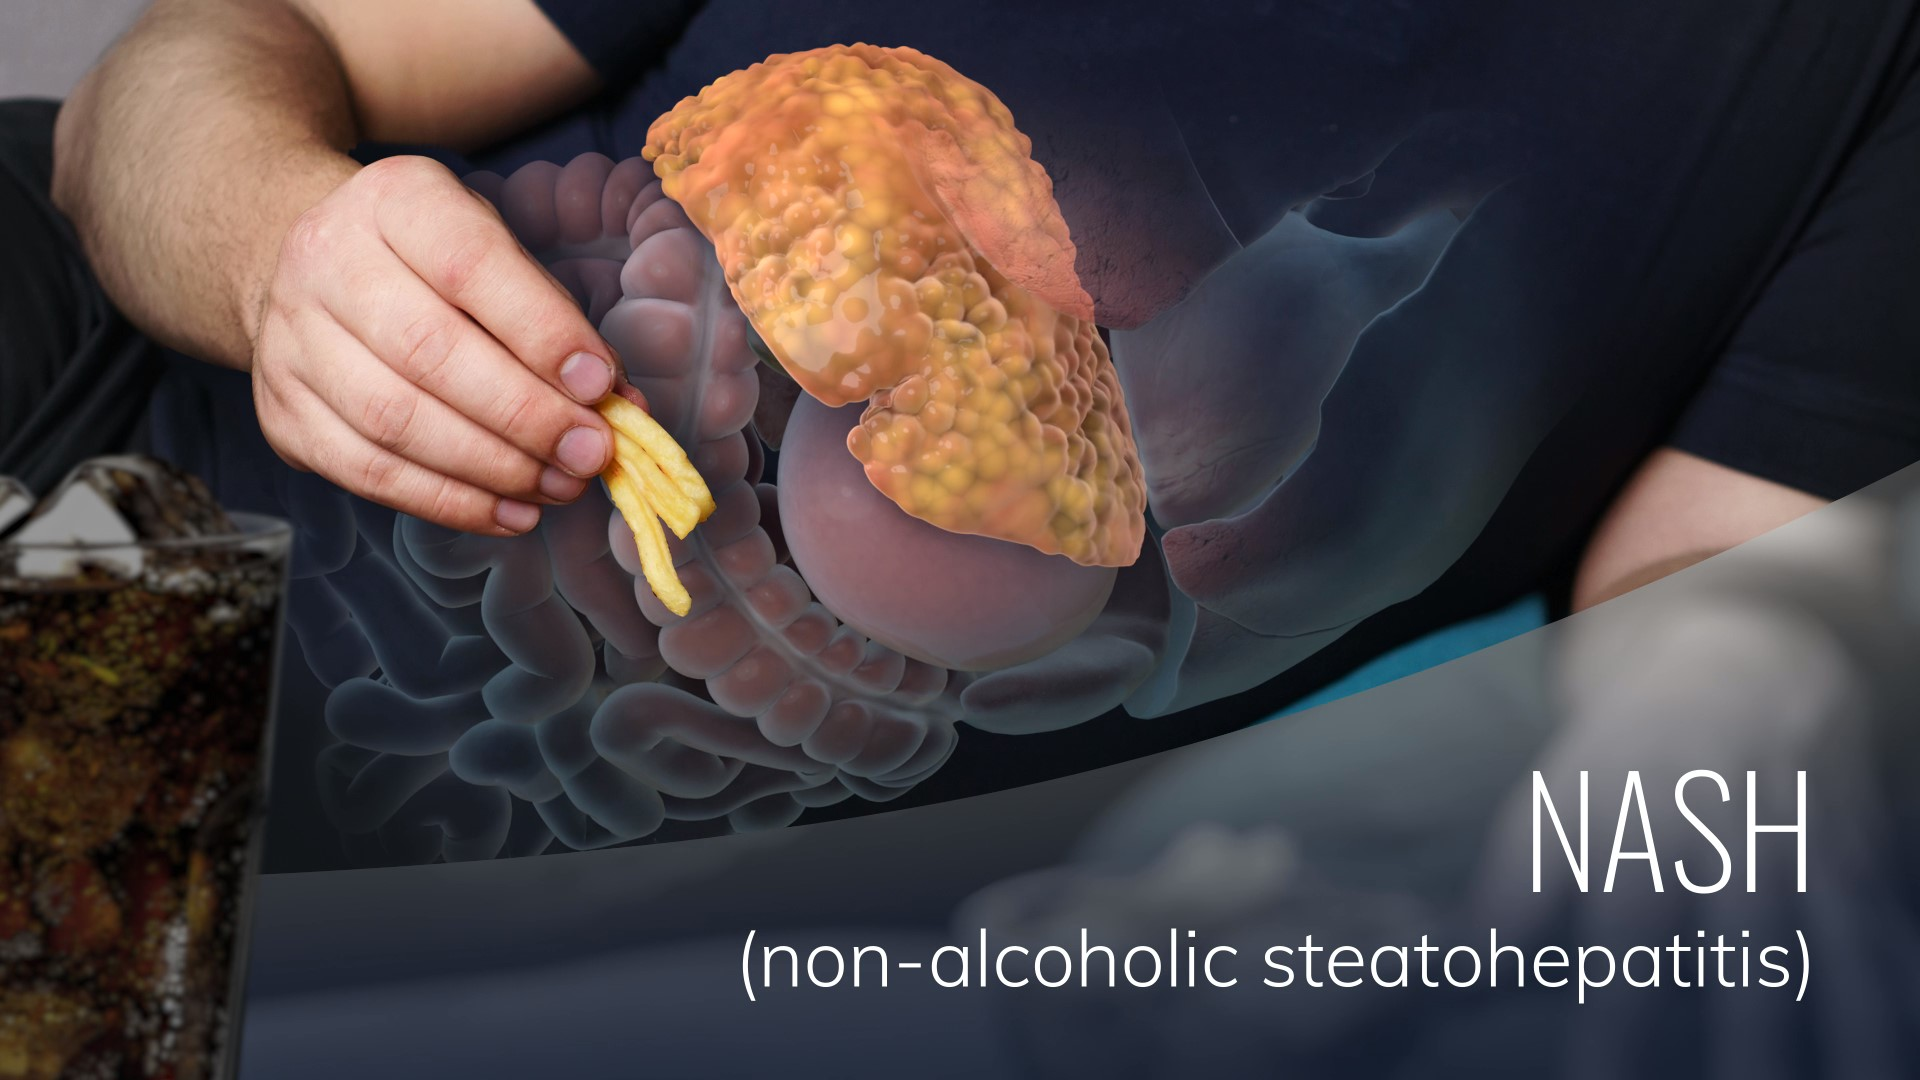 Hepatitis Caused by Nonalcoholic Steatosis (NASH)